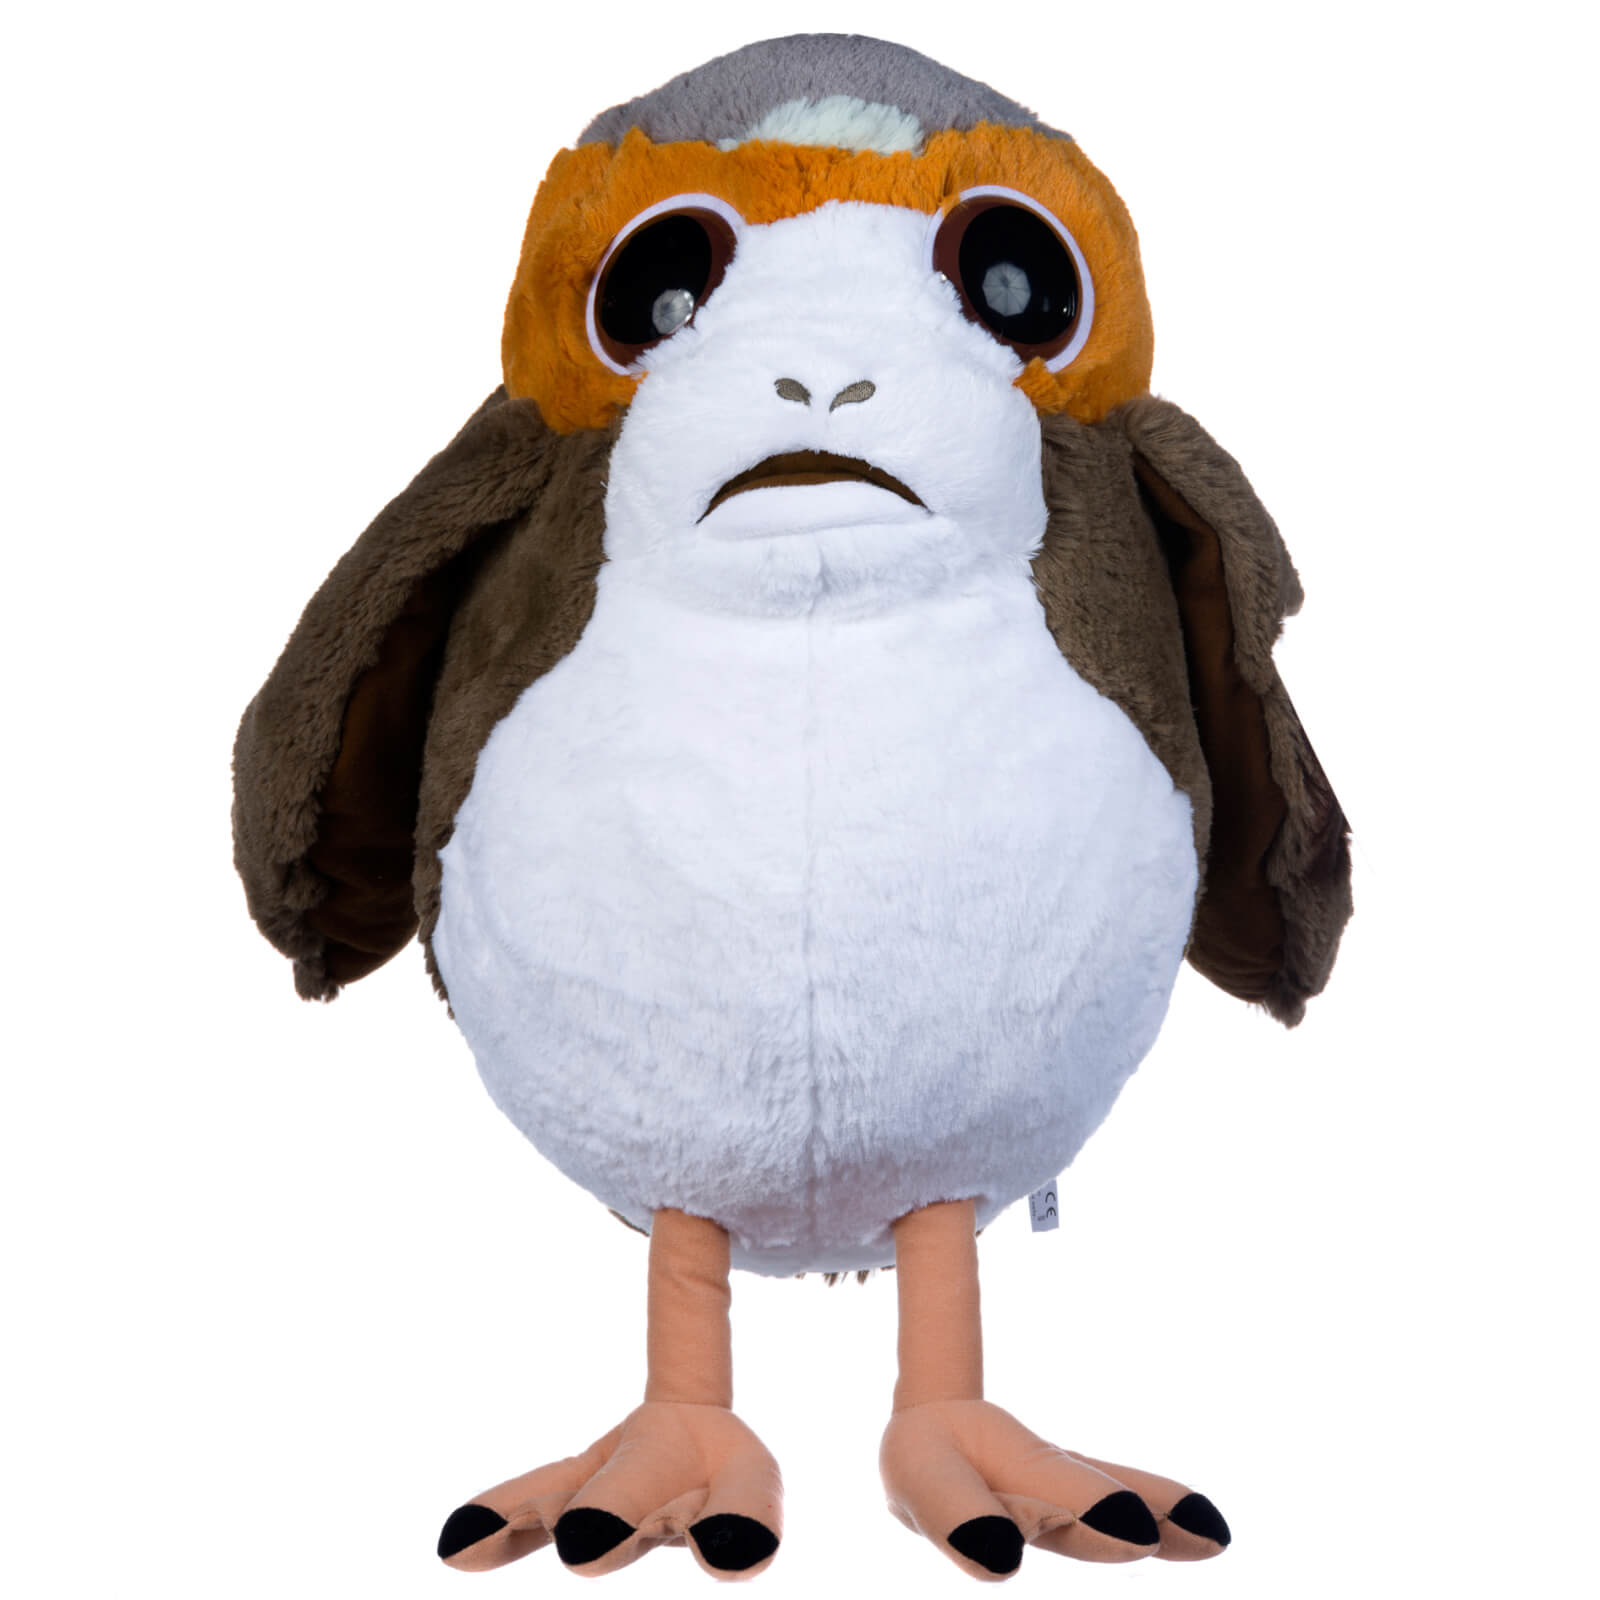 "Star Wars Episode 8 - The Last Jedi - 18"""" Porg Plush"